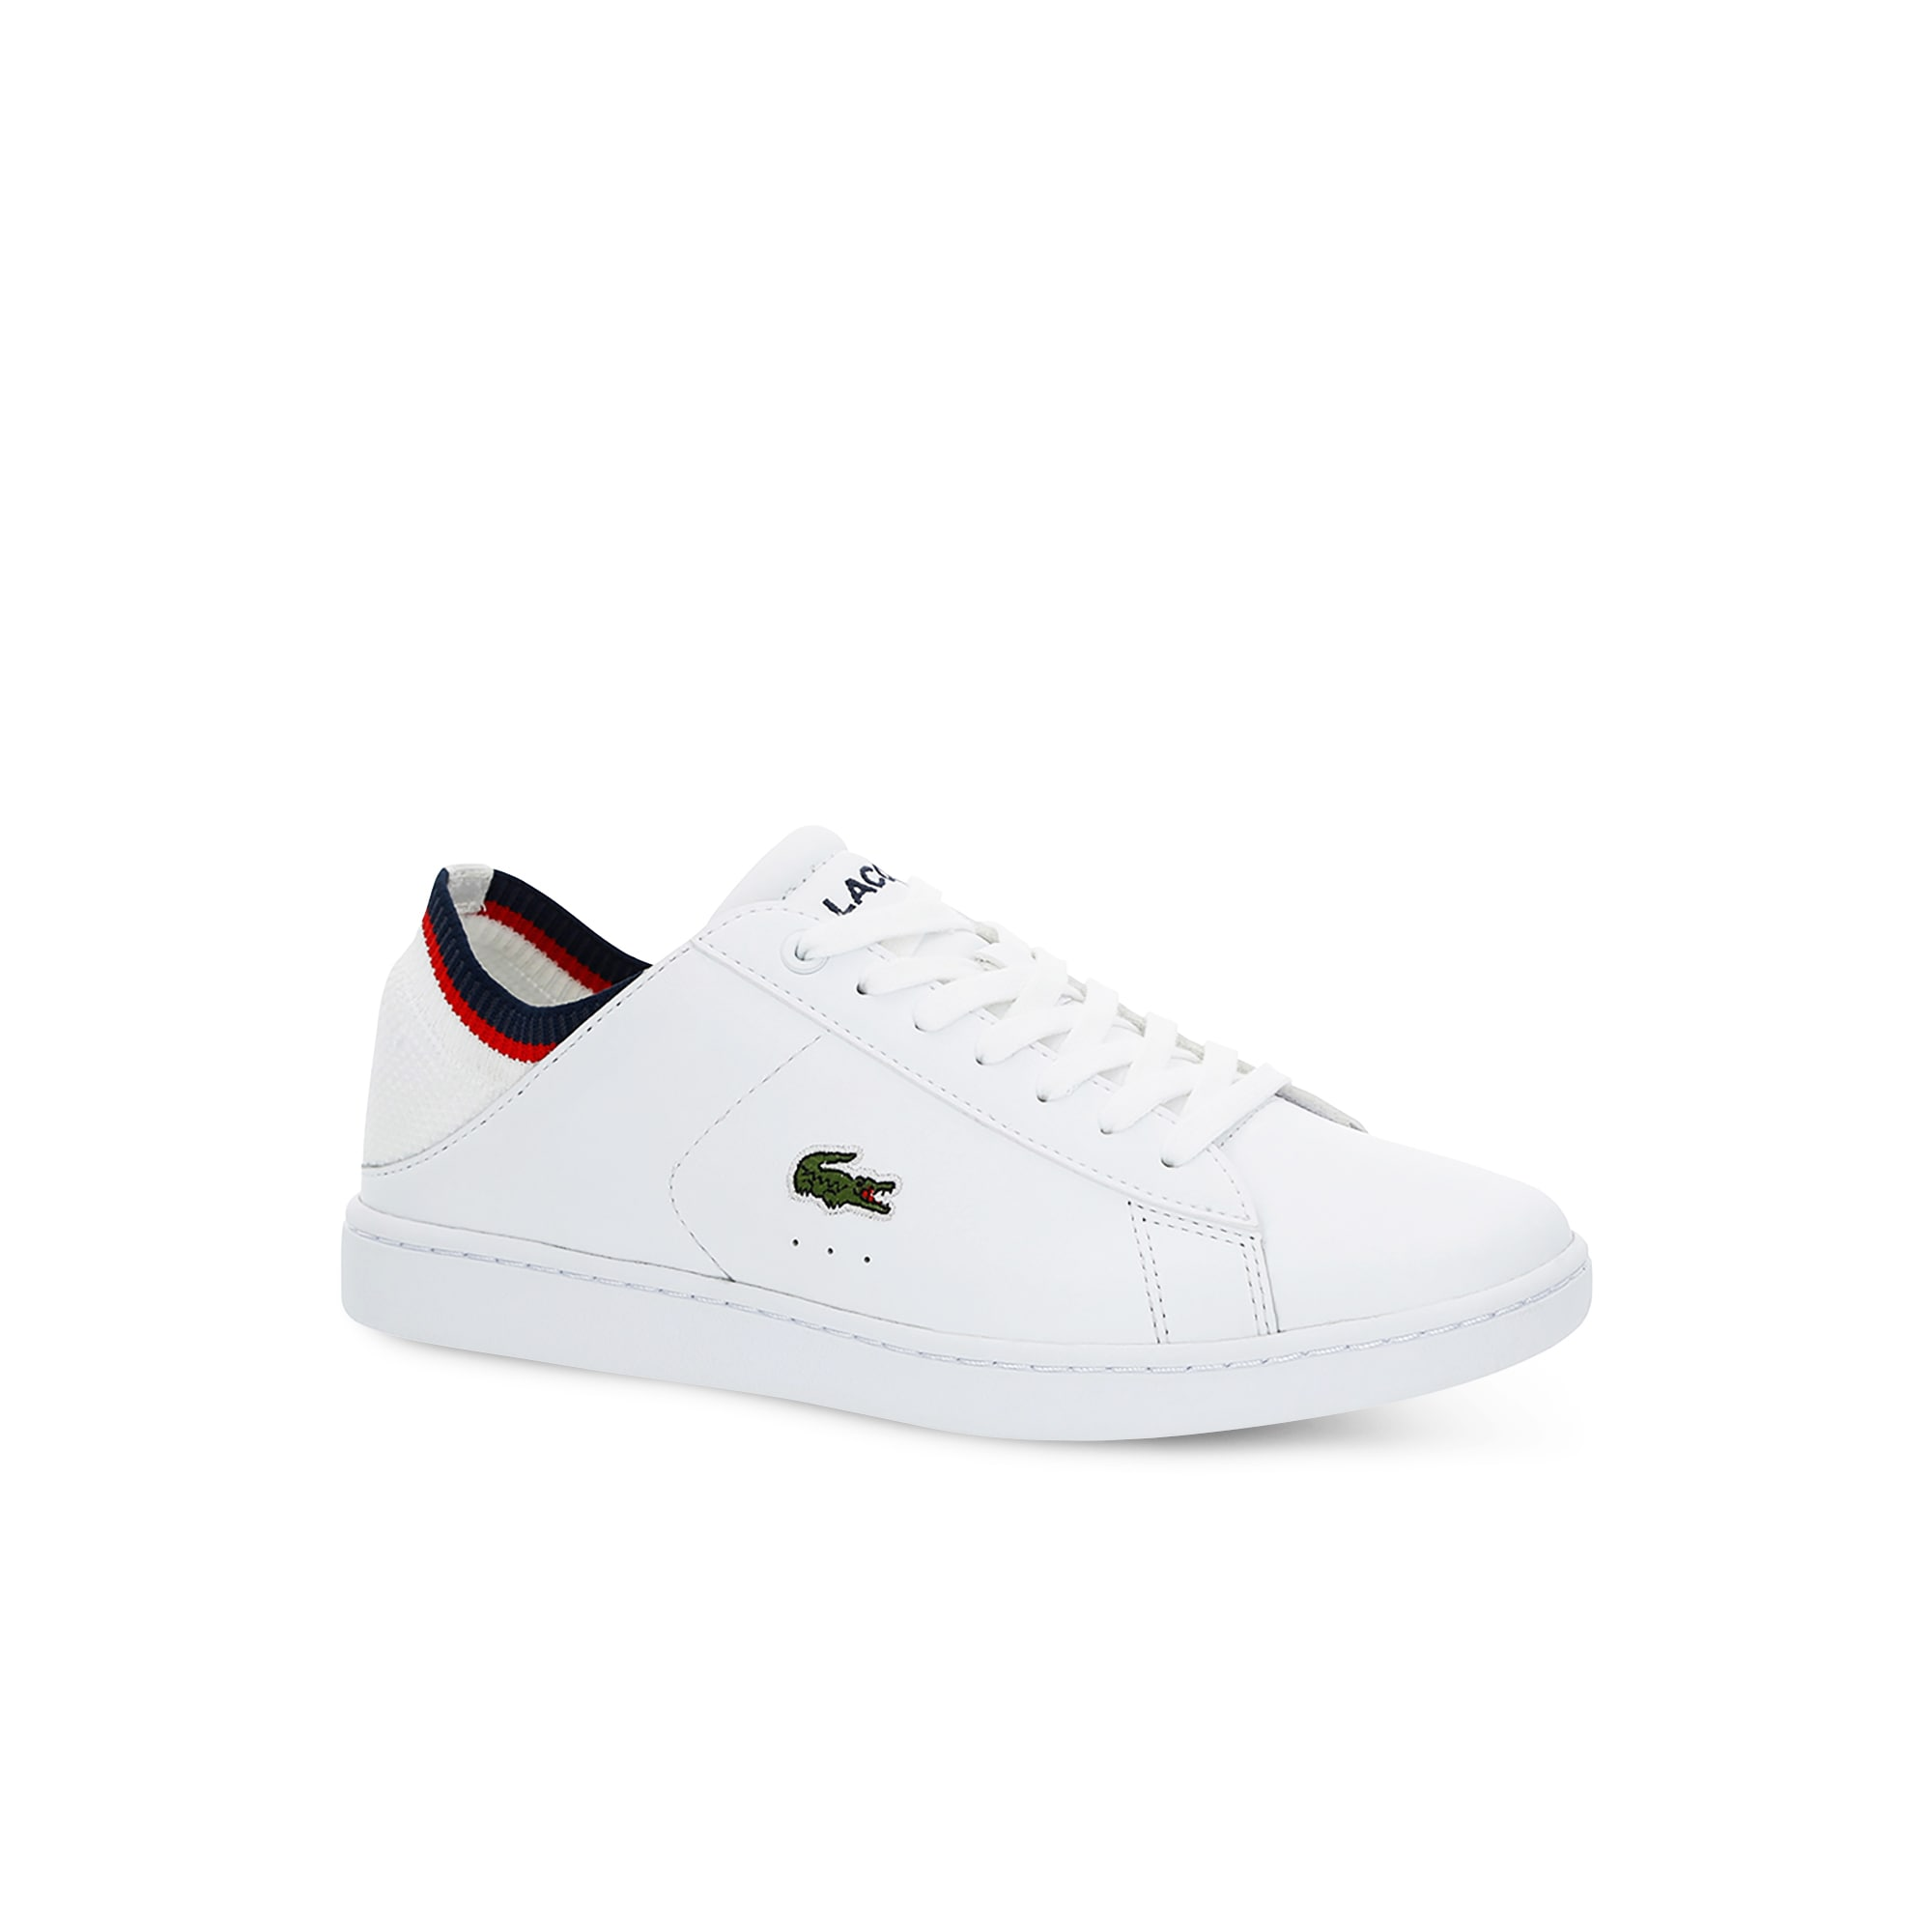 01259053918 + 2 colors. Women s Carnaby Sneakers